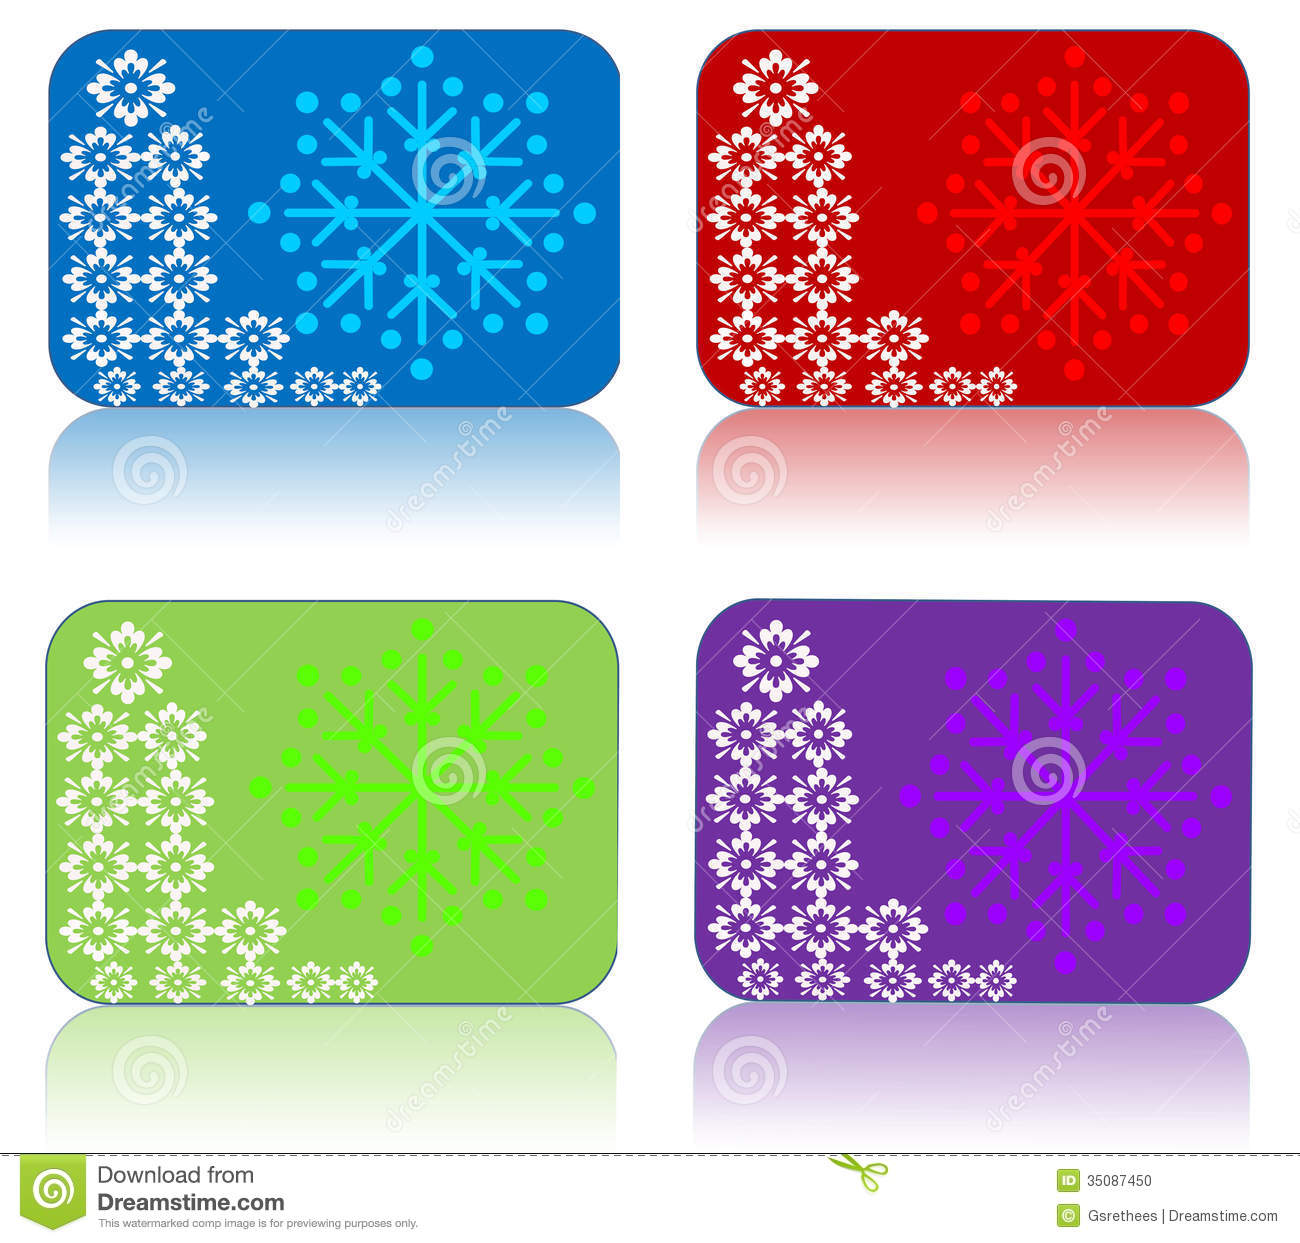 Set of four gift tags for christmas with floral backgrounds.